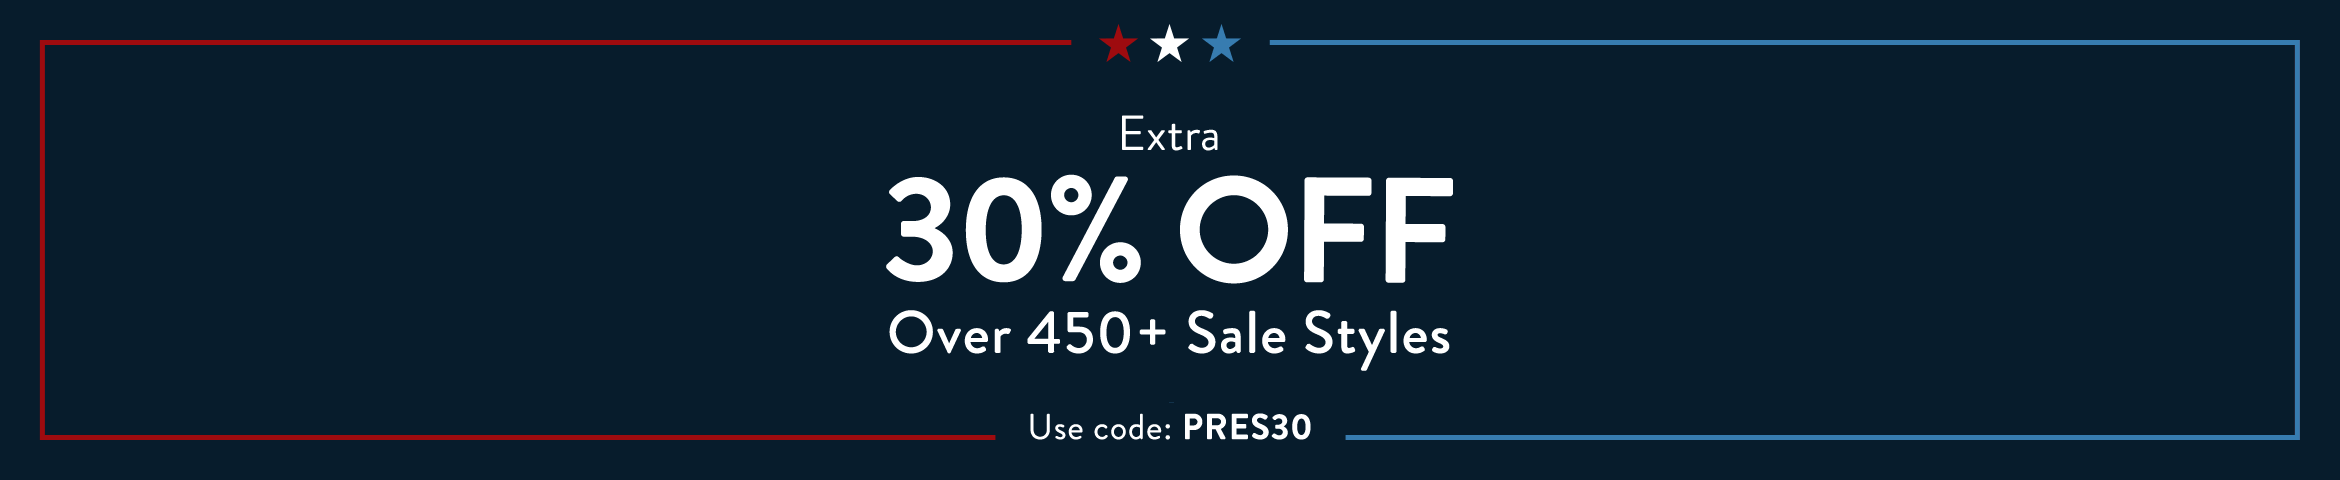 Extra 30% Off Over 450+ Sale Styles. Use code: PRES30.